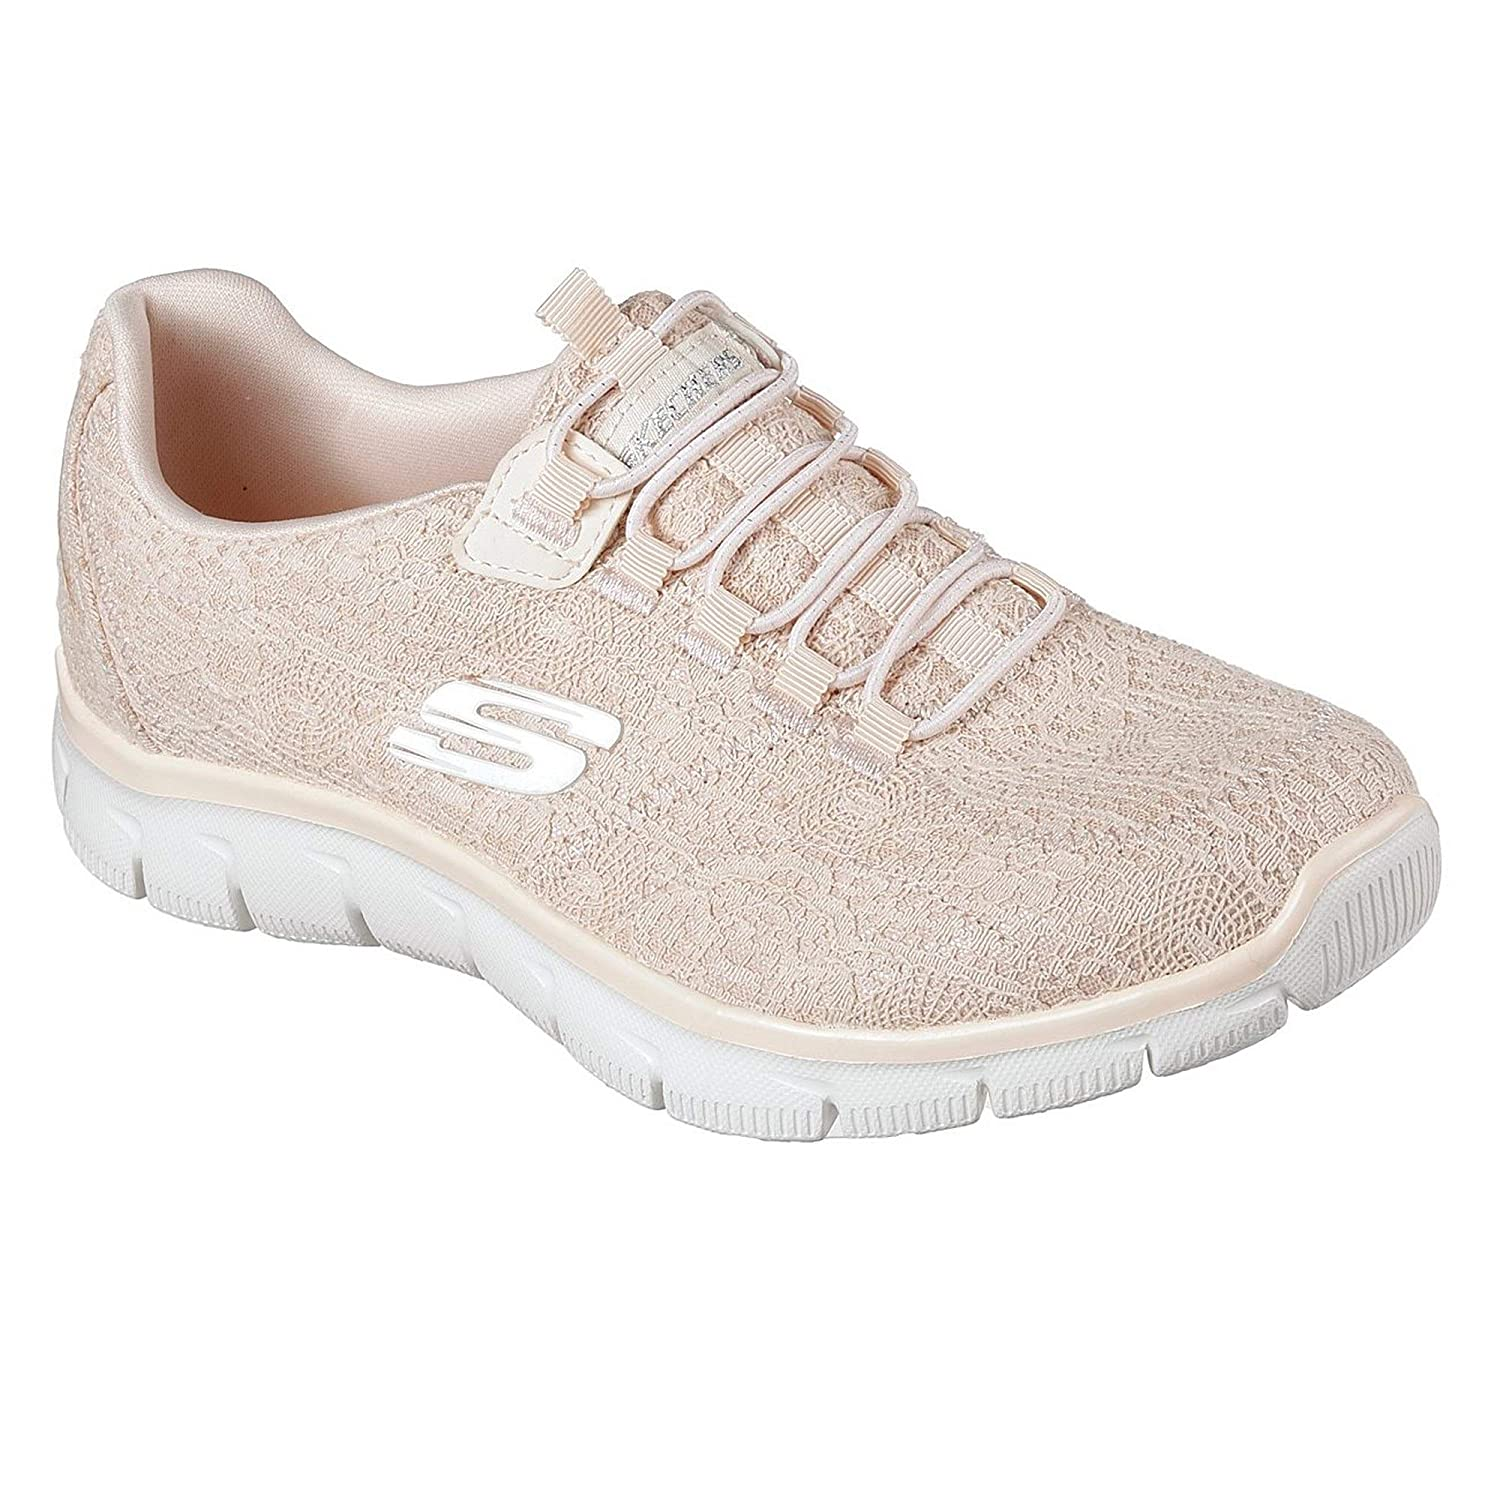 Details zu Skechers NEW Empire Spring Glow peach lace comfort slip on trainers sizes 3 8